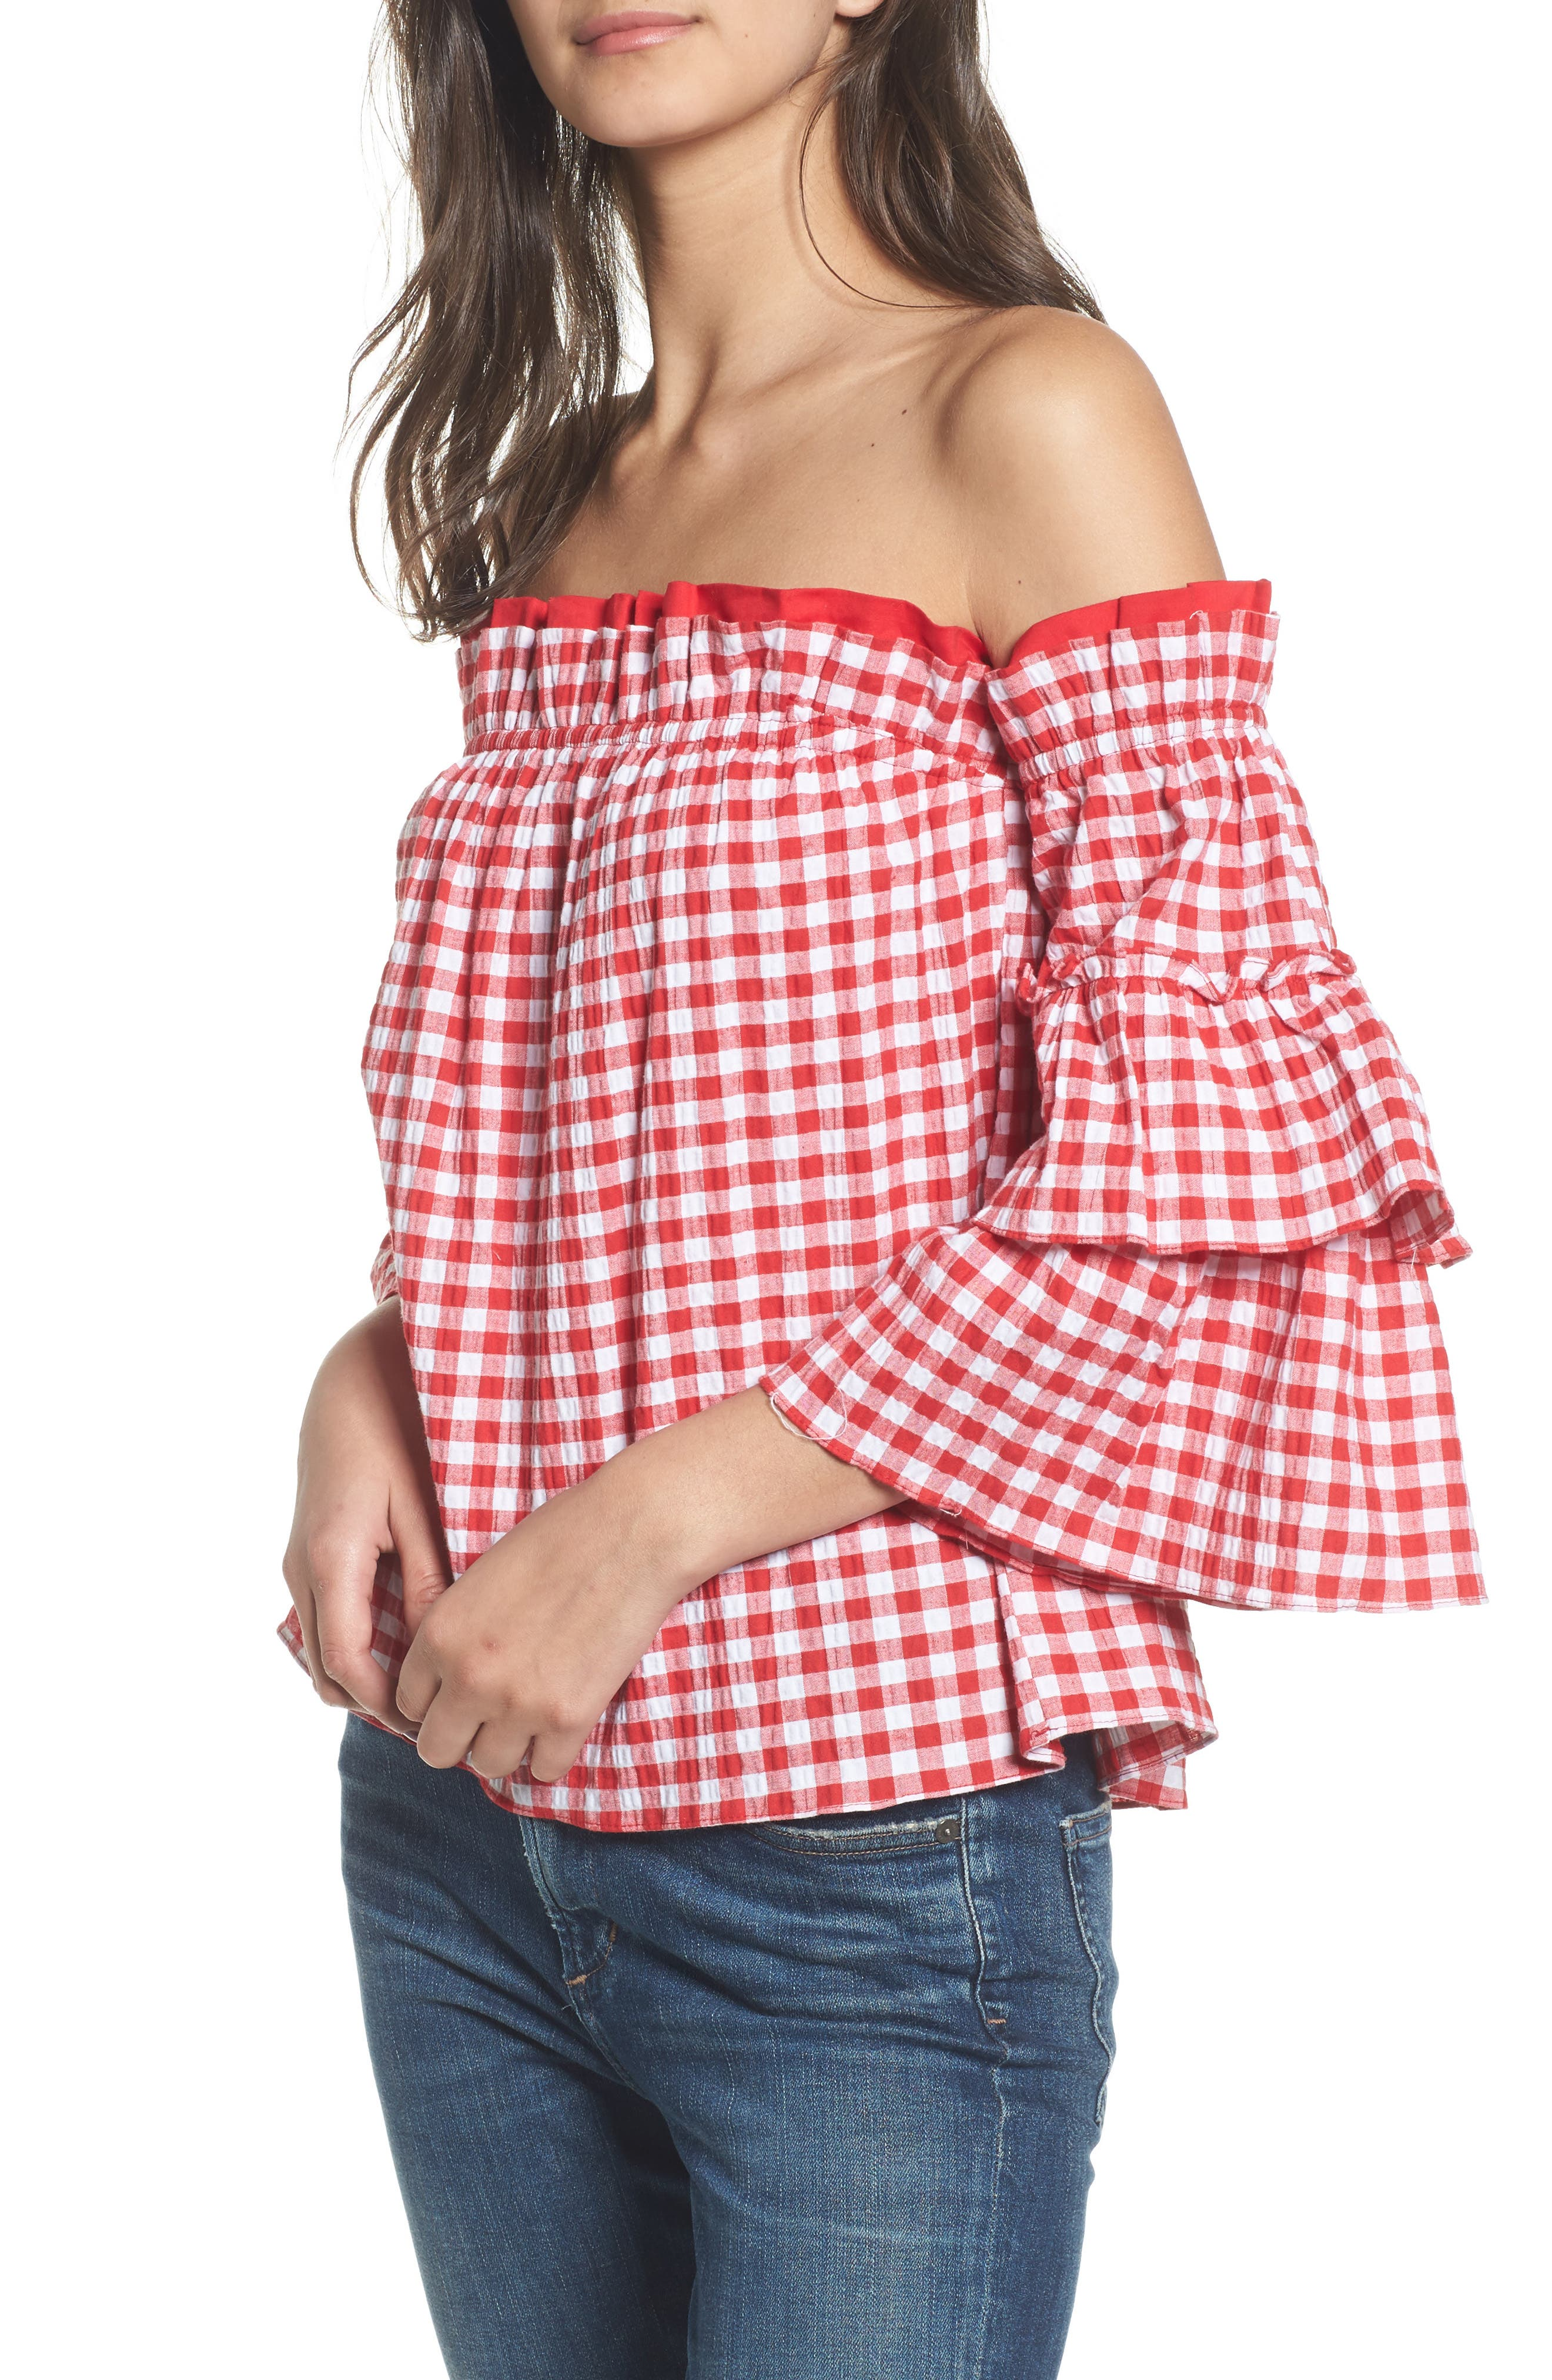 Sabina Off the Shoulder Top,                         Main,                         color, Red/ White Multi